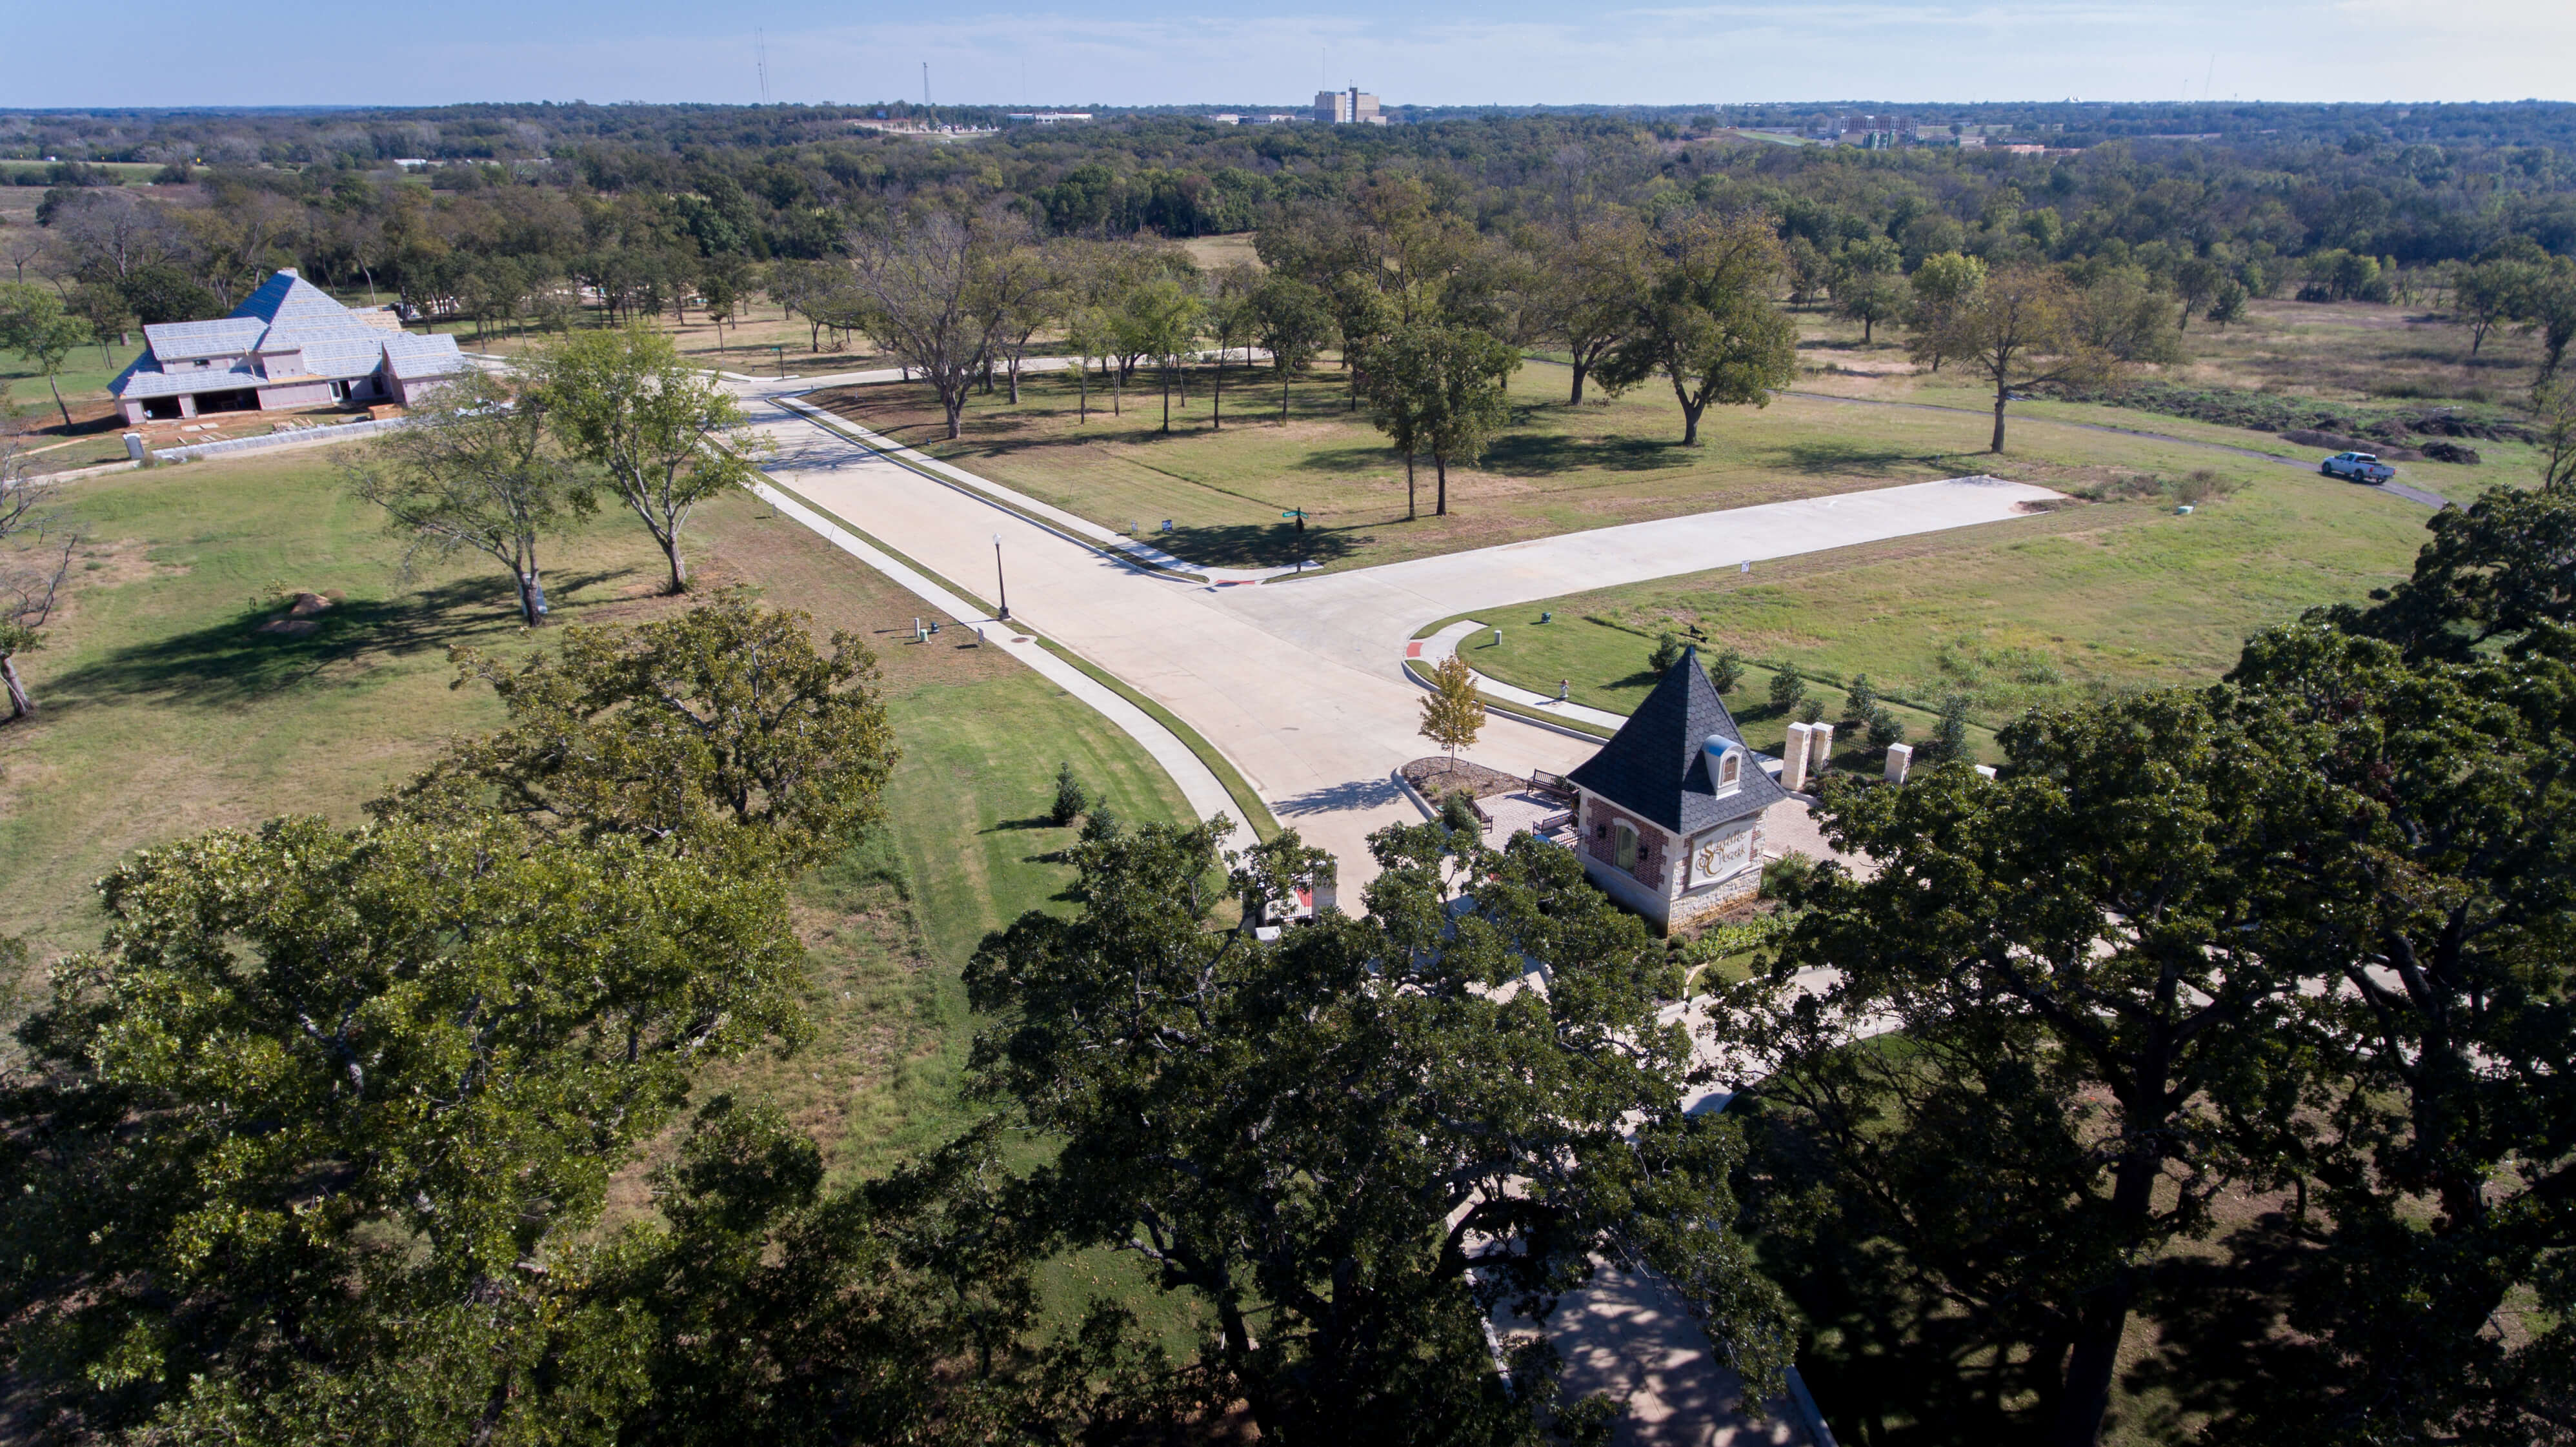 Saddle Creek Aerial View